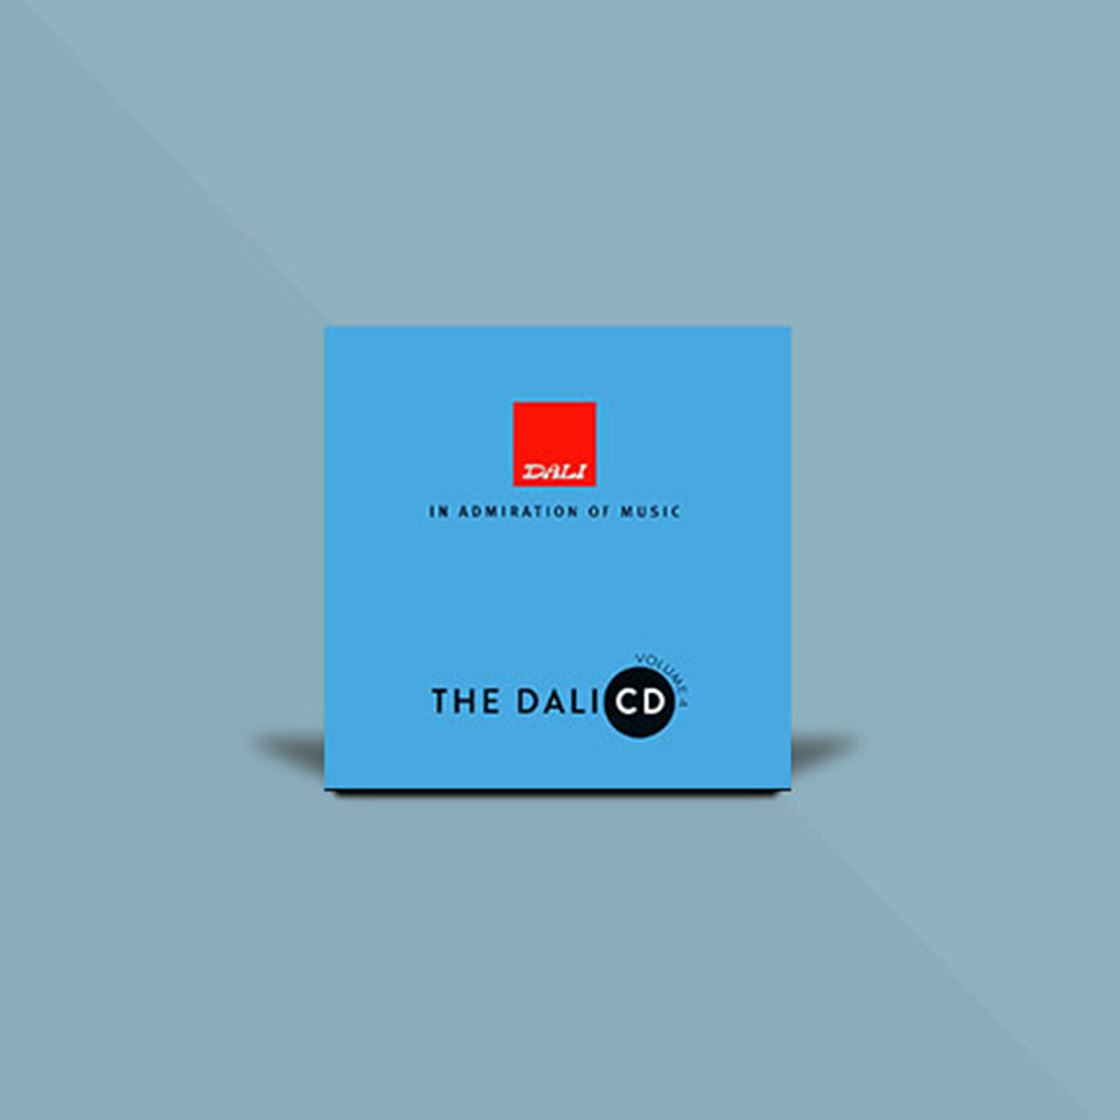 DALI news - Browse through our news section on this page